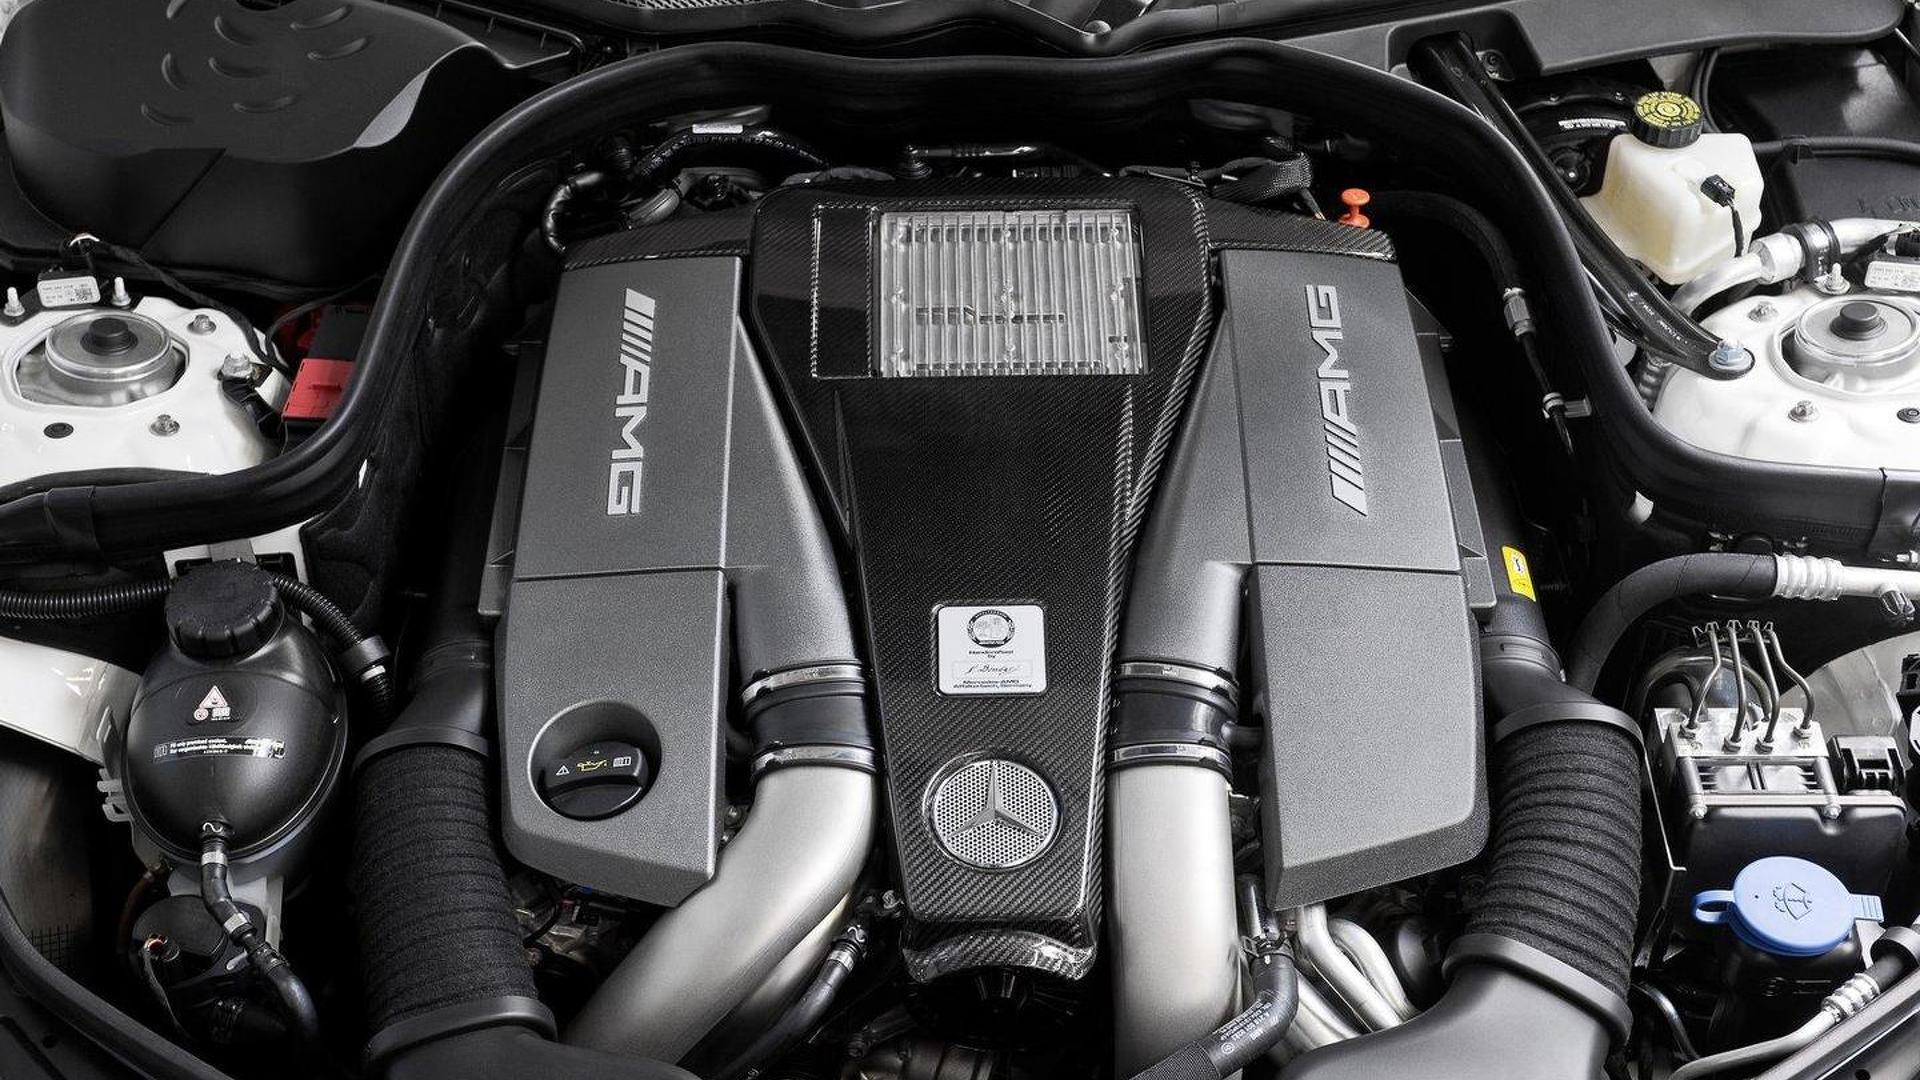 Mercedes approves new straight-six engine family - report